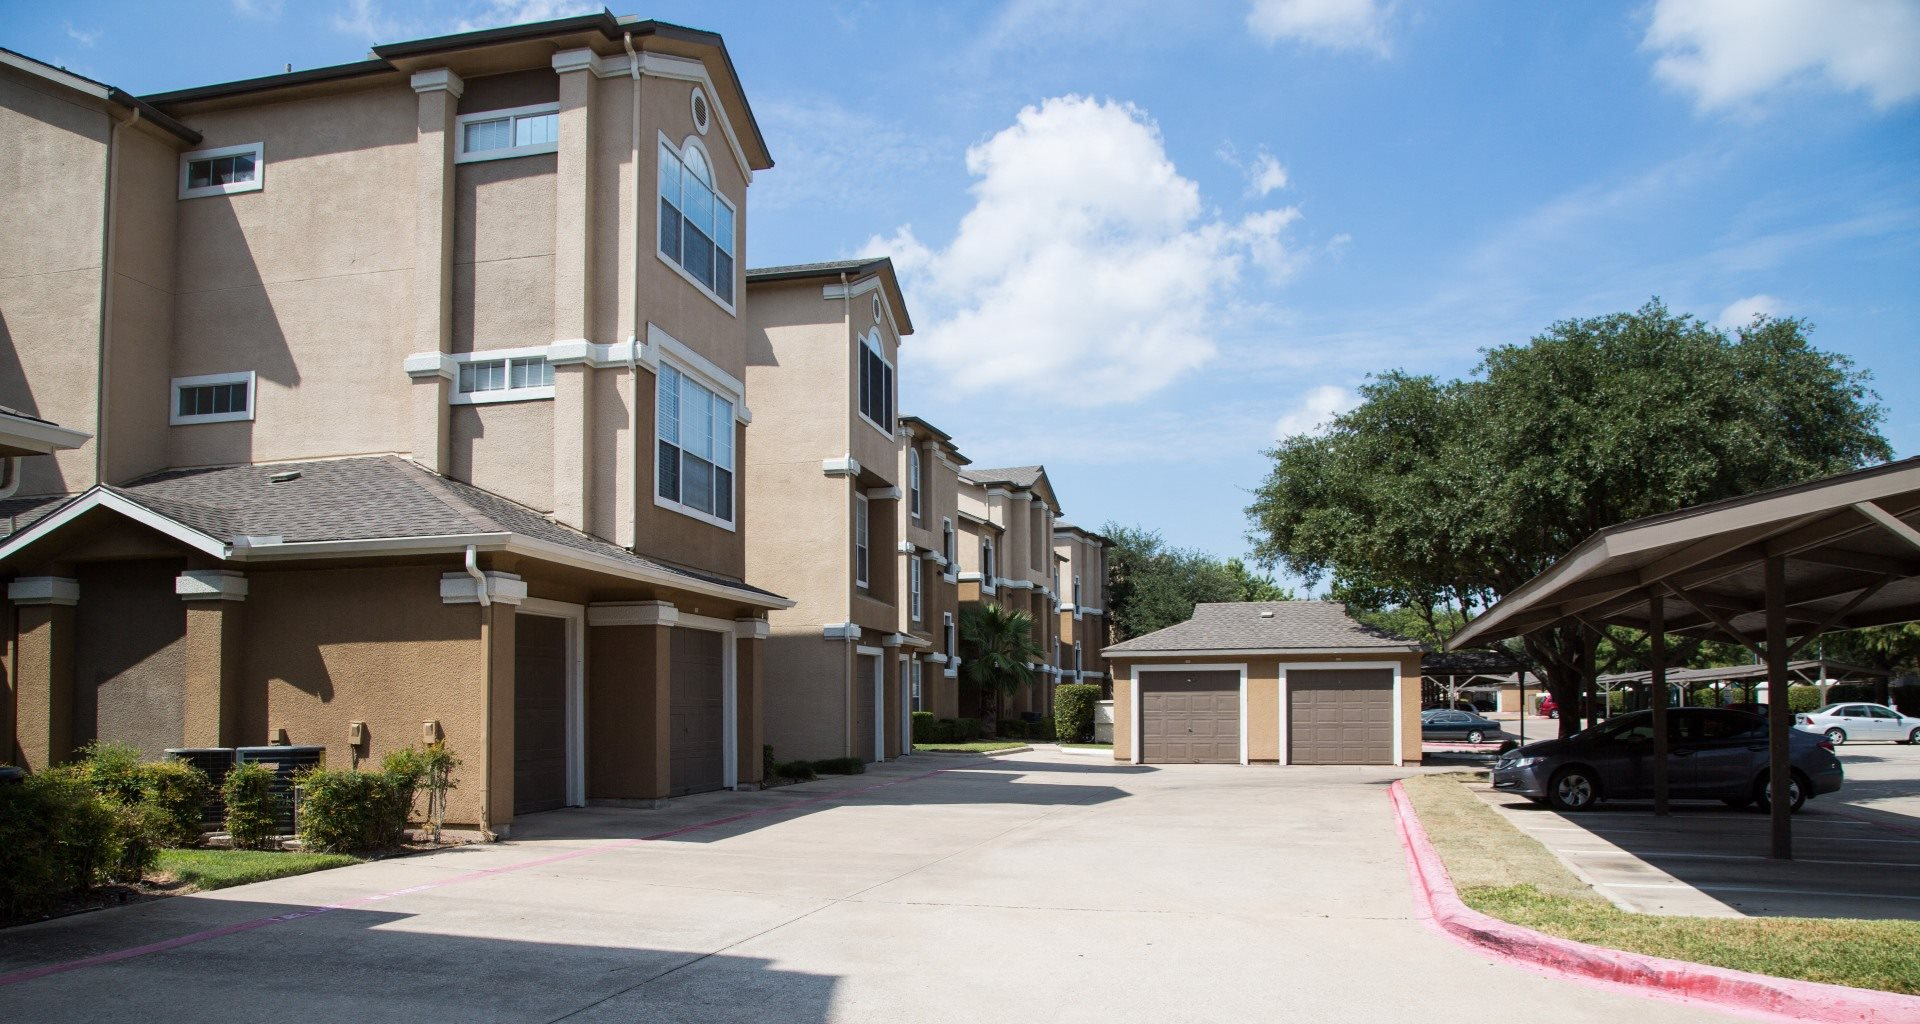 Top rated apartments in far north dallas tx fairways at - Cheap 3 bedroom apartments in dallas tx ...